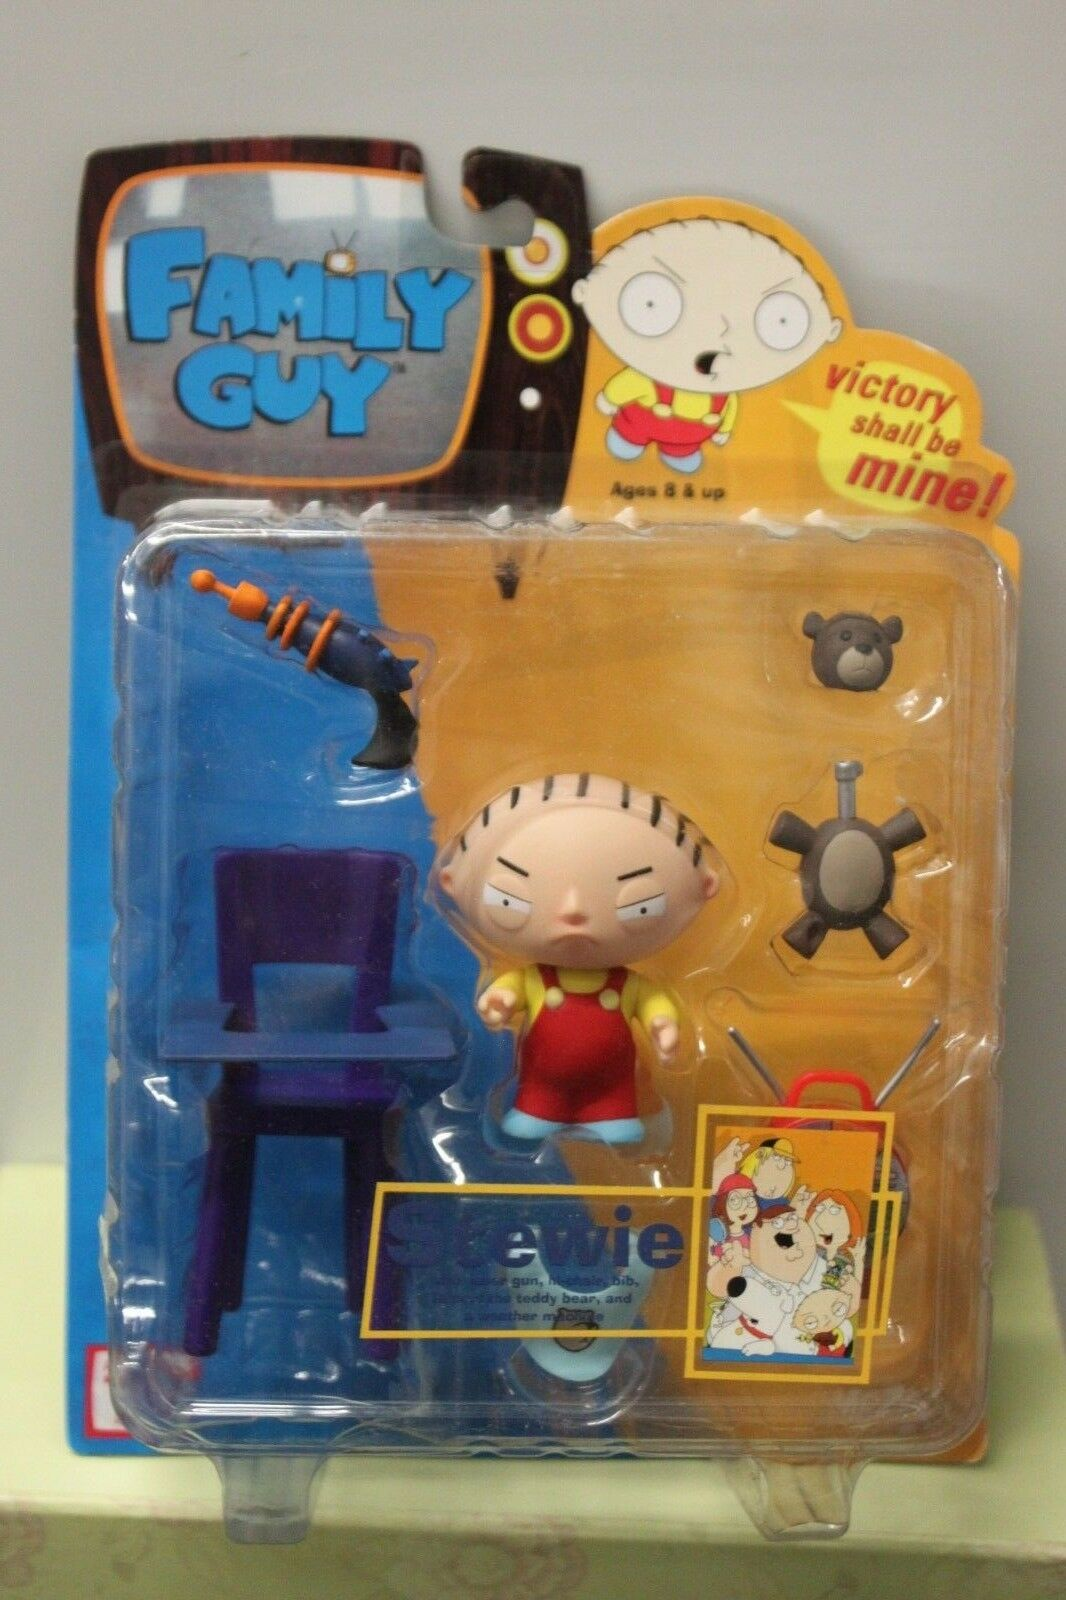 STEWIE FAMILY GUY 2004 Mezco Series 1 TV Carton Griffin Action Figure Toy NEW